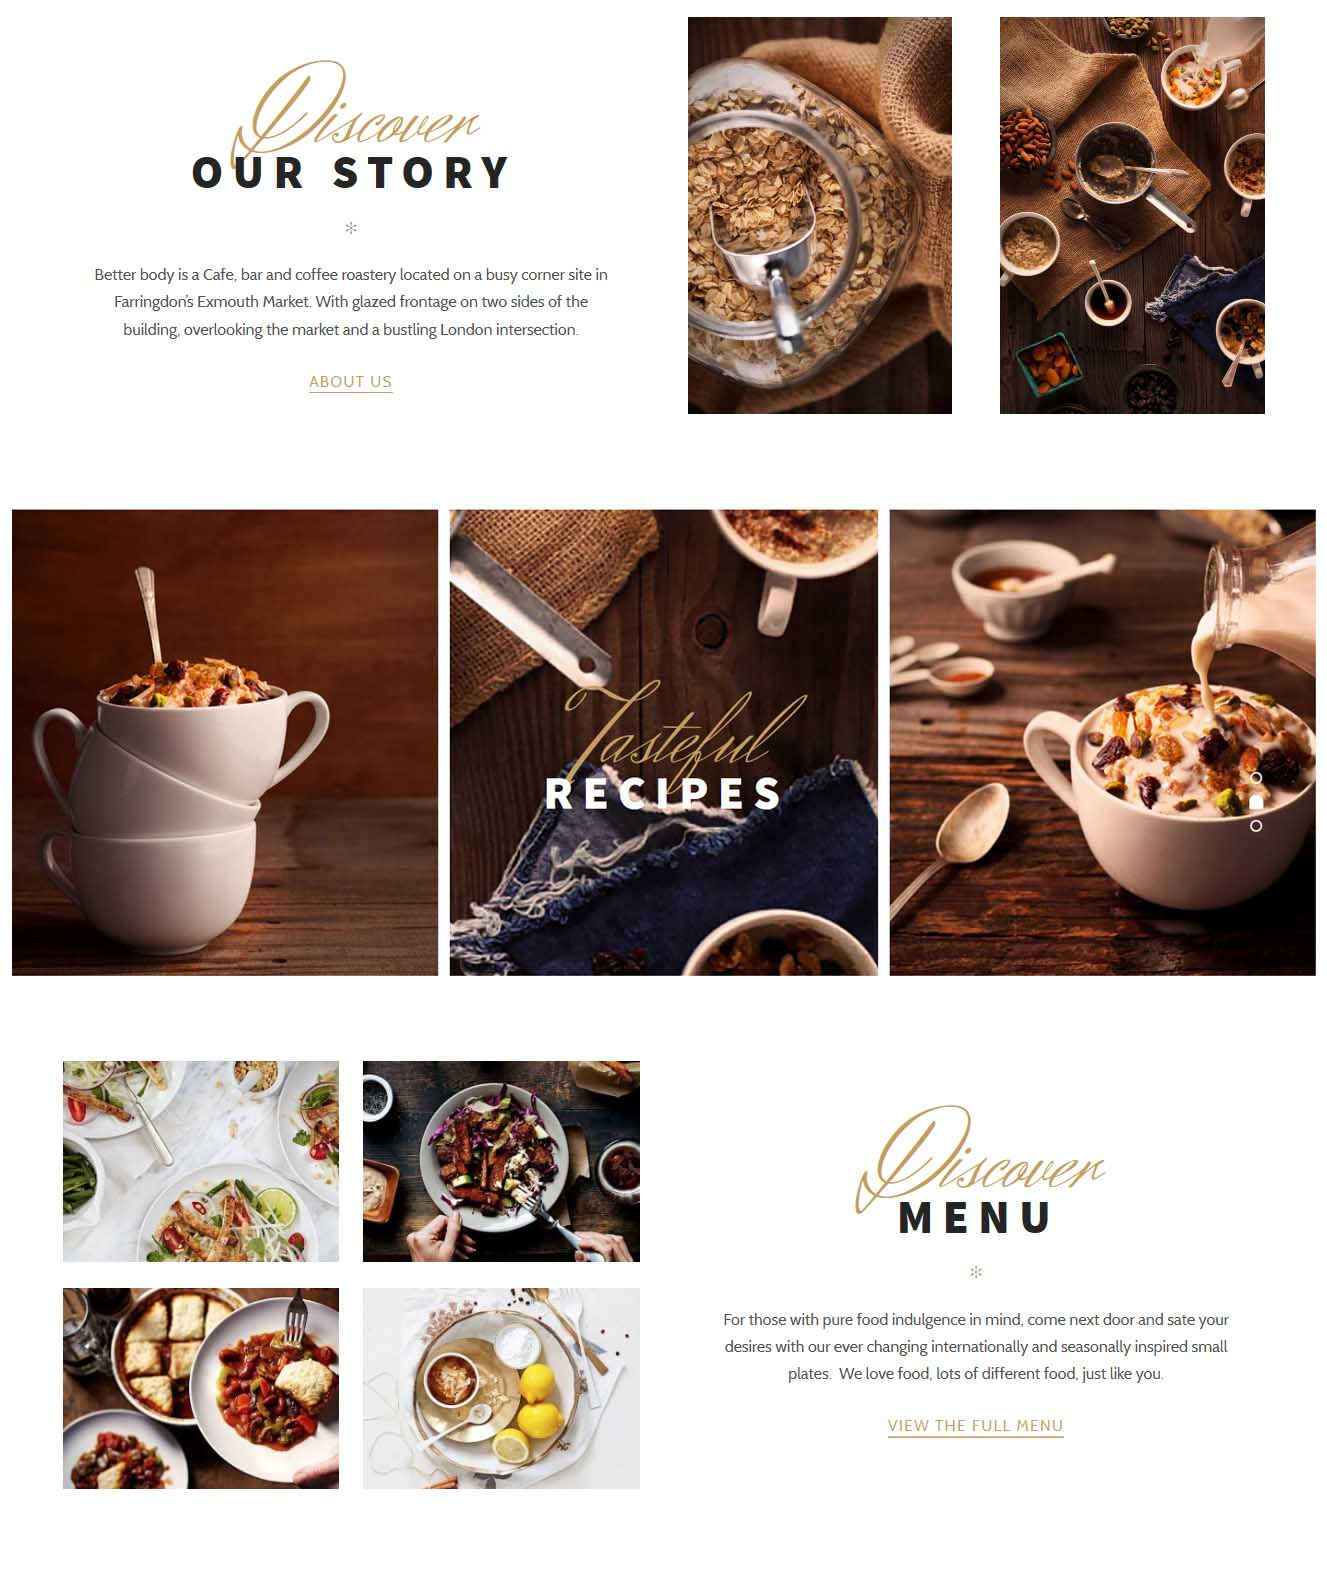 01 - Cafes - Our Story